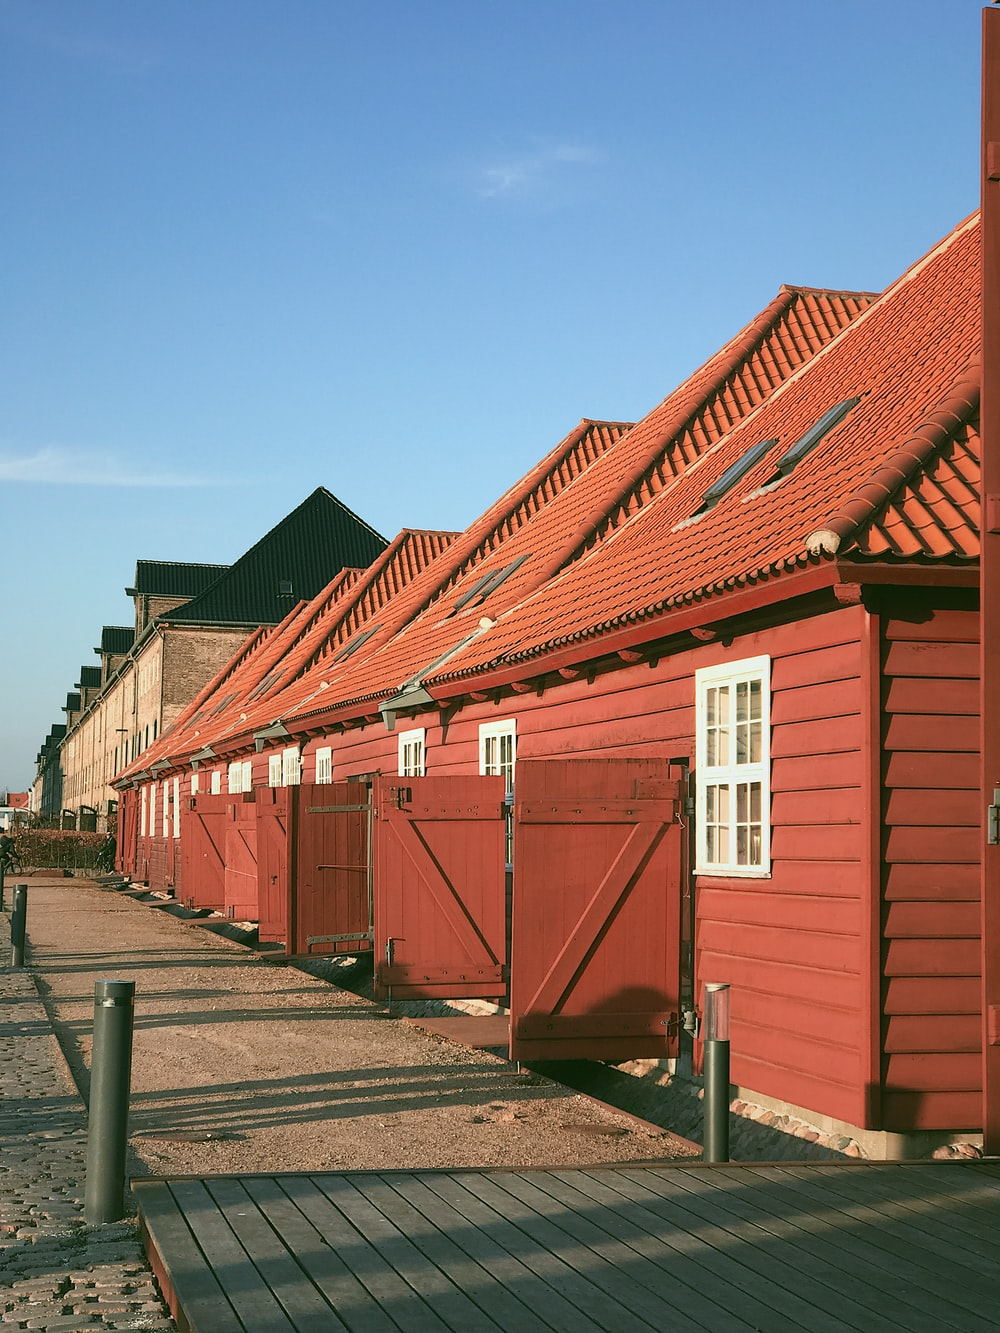 red wooden cottages under a calm blue sky